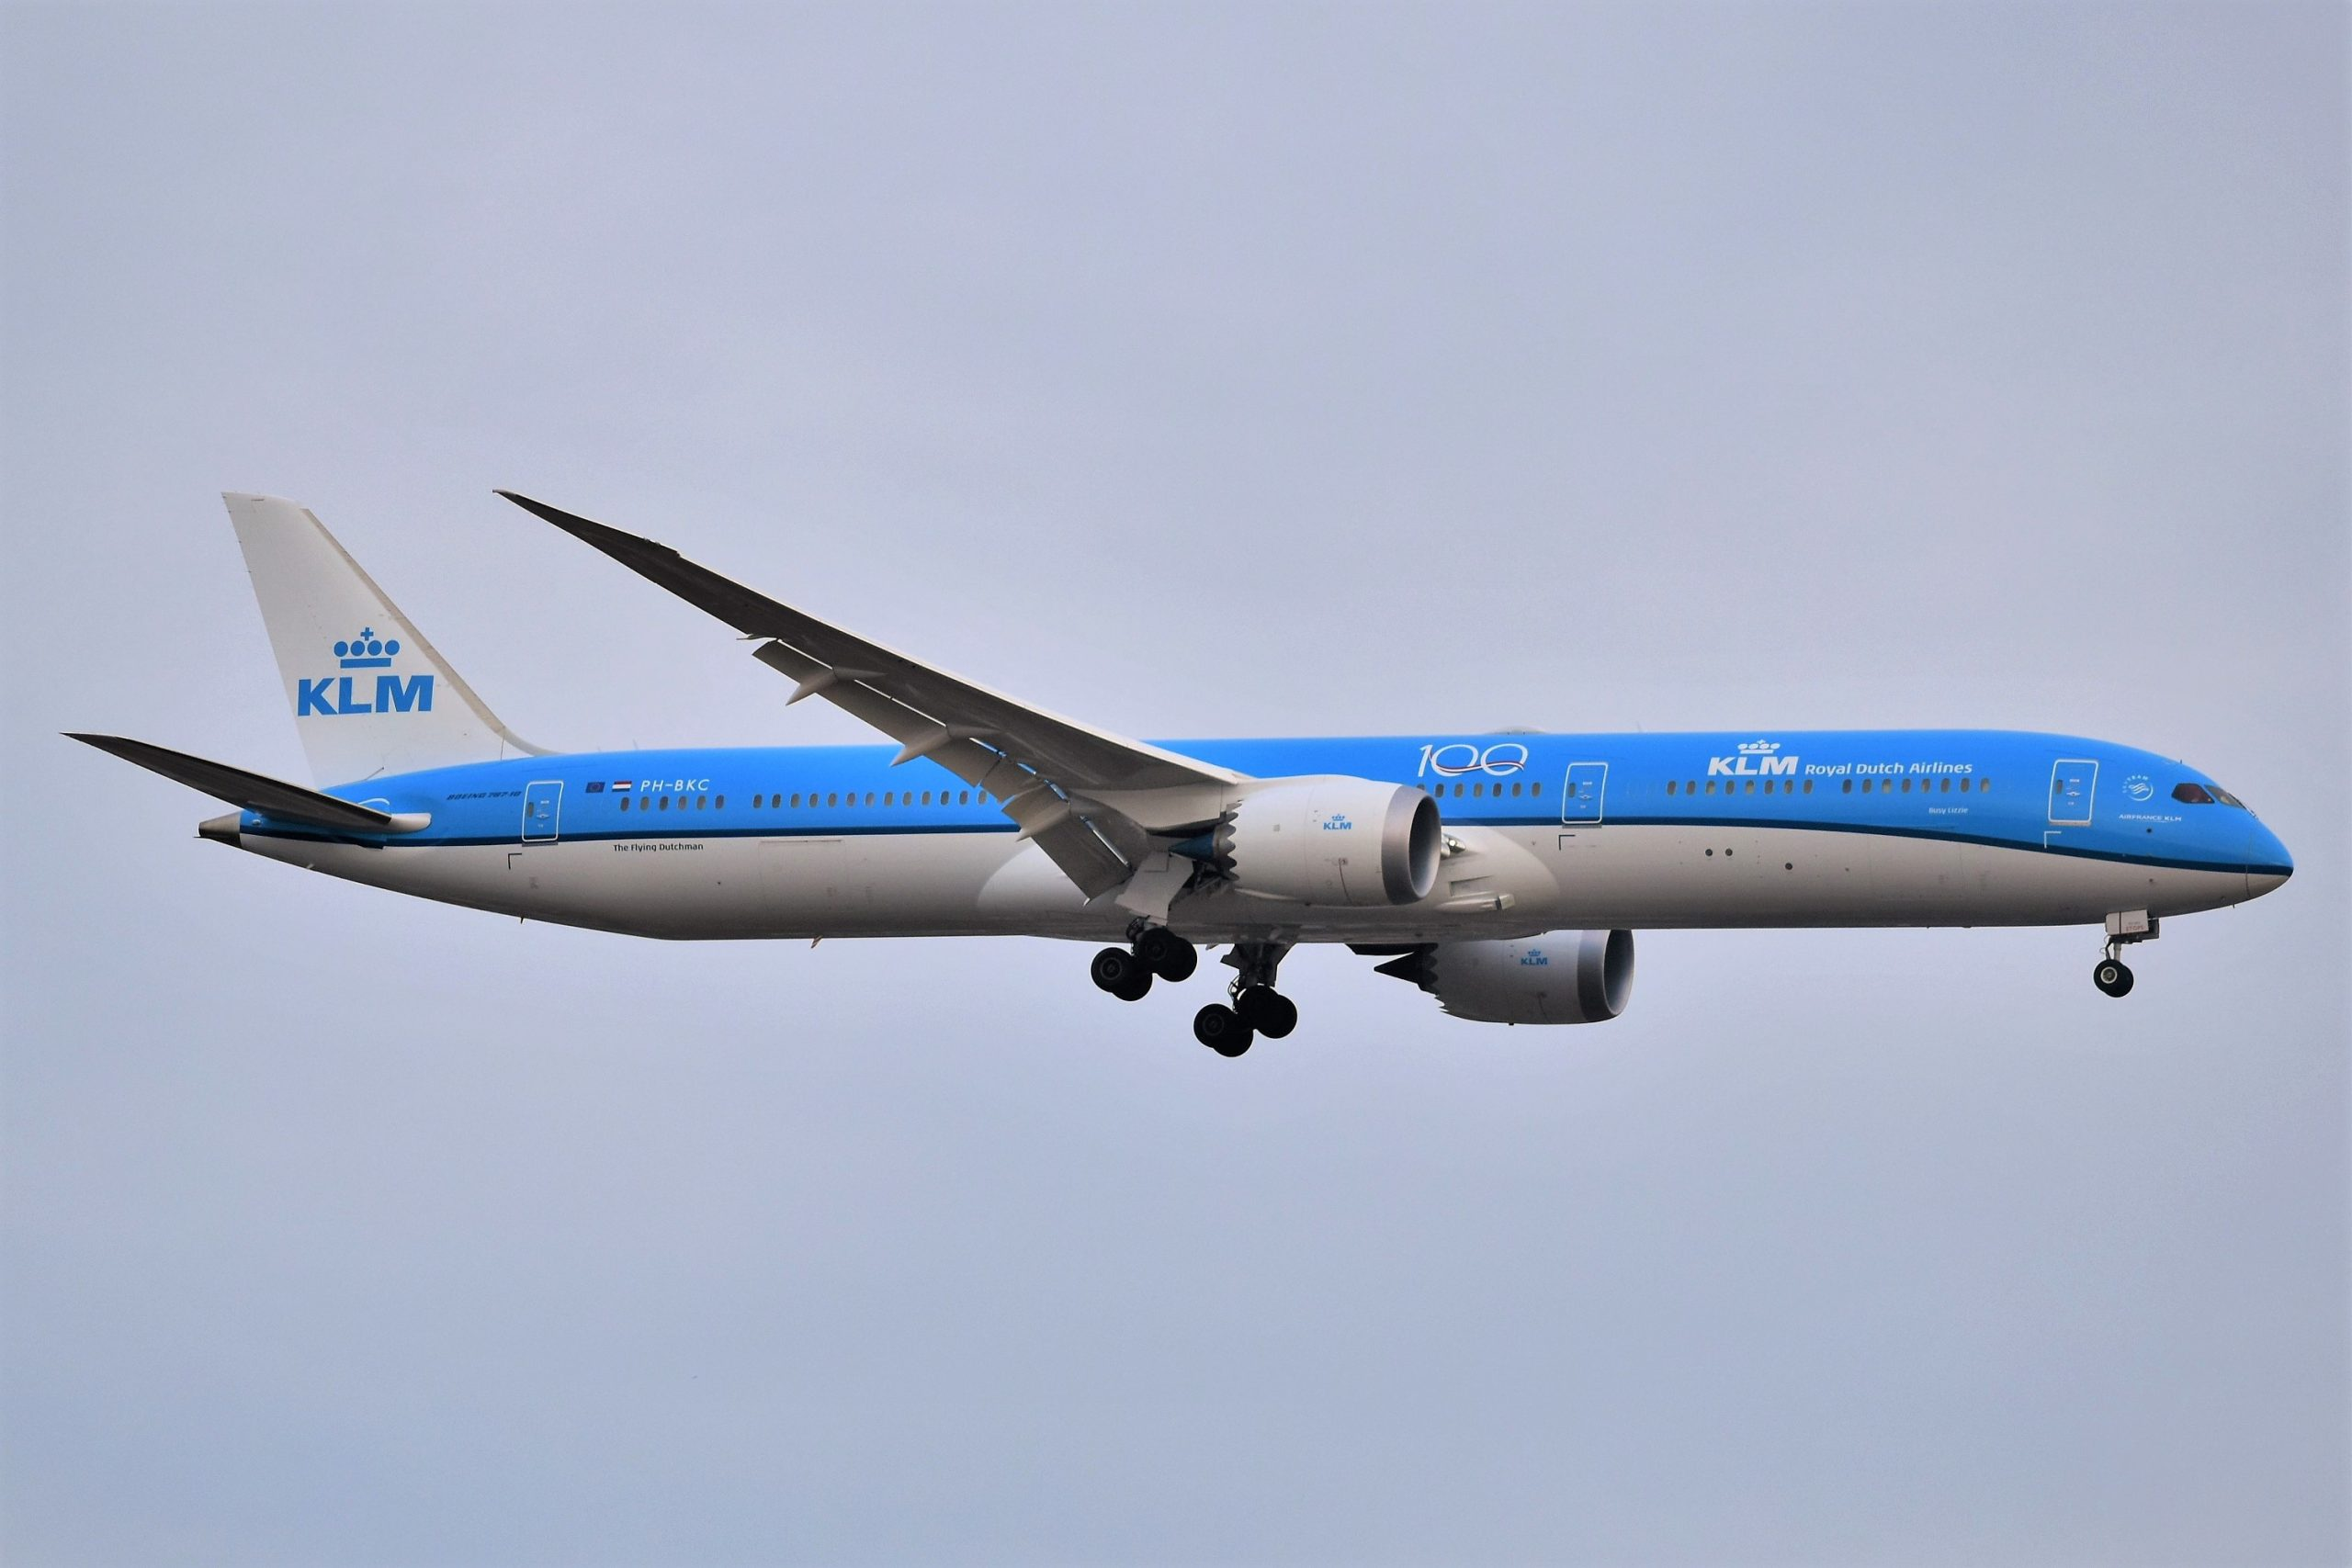 KLM To Receive 3.4 billion euros ($3.8 billion) From Dutch Government